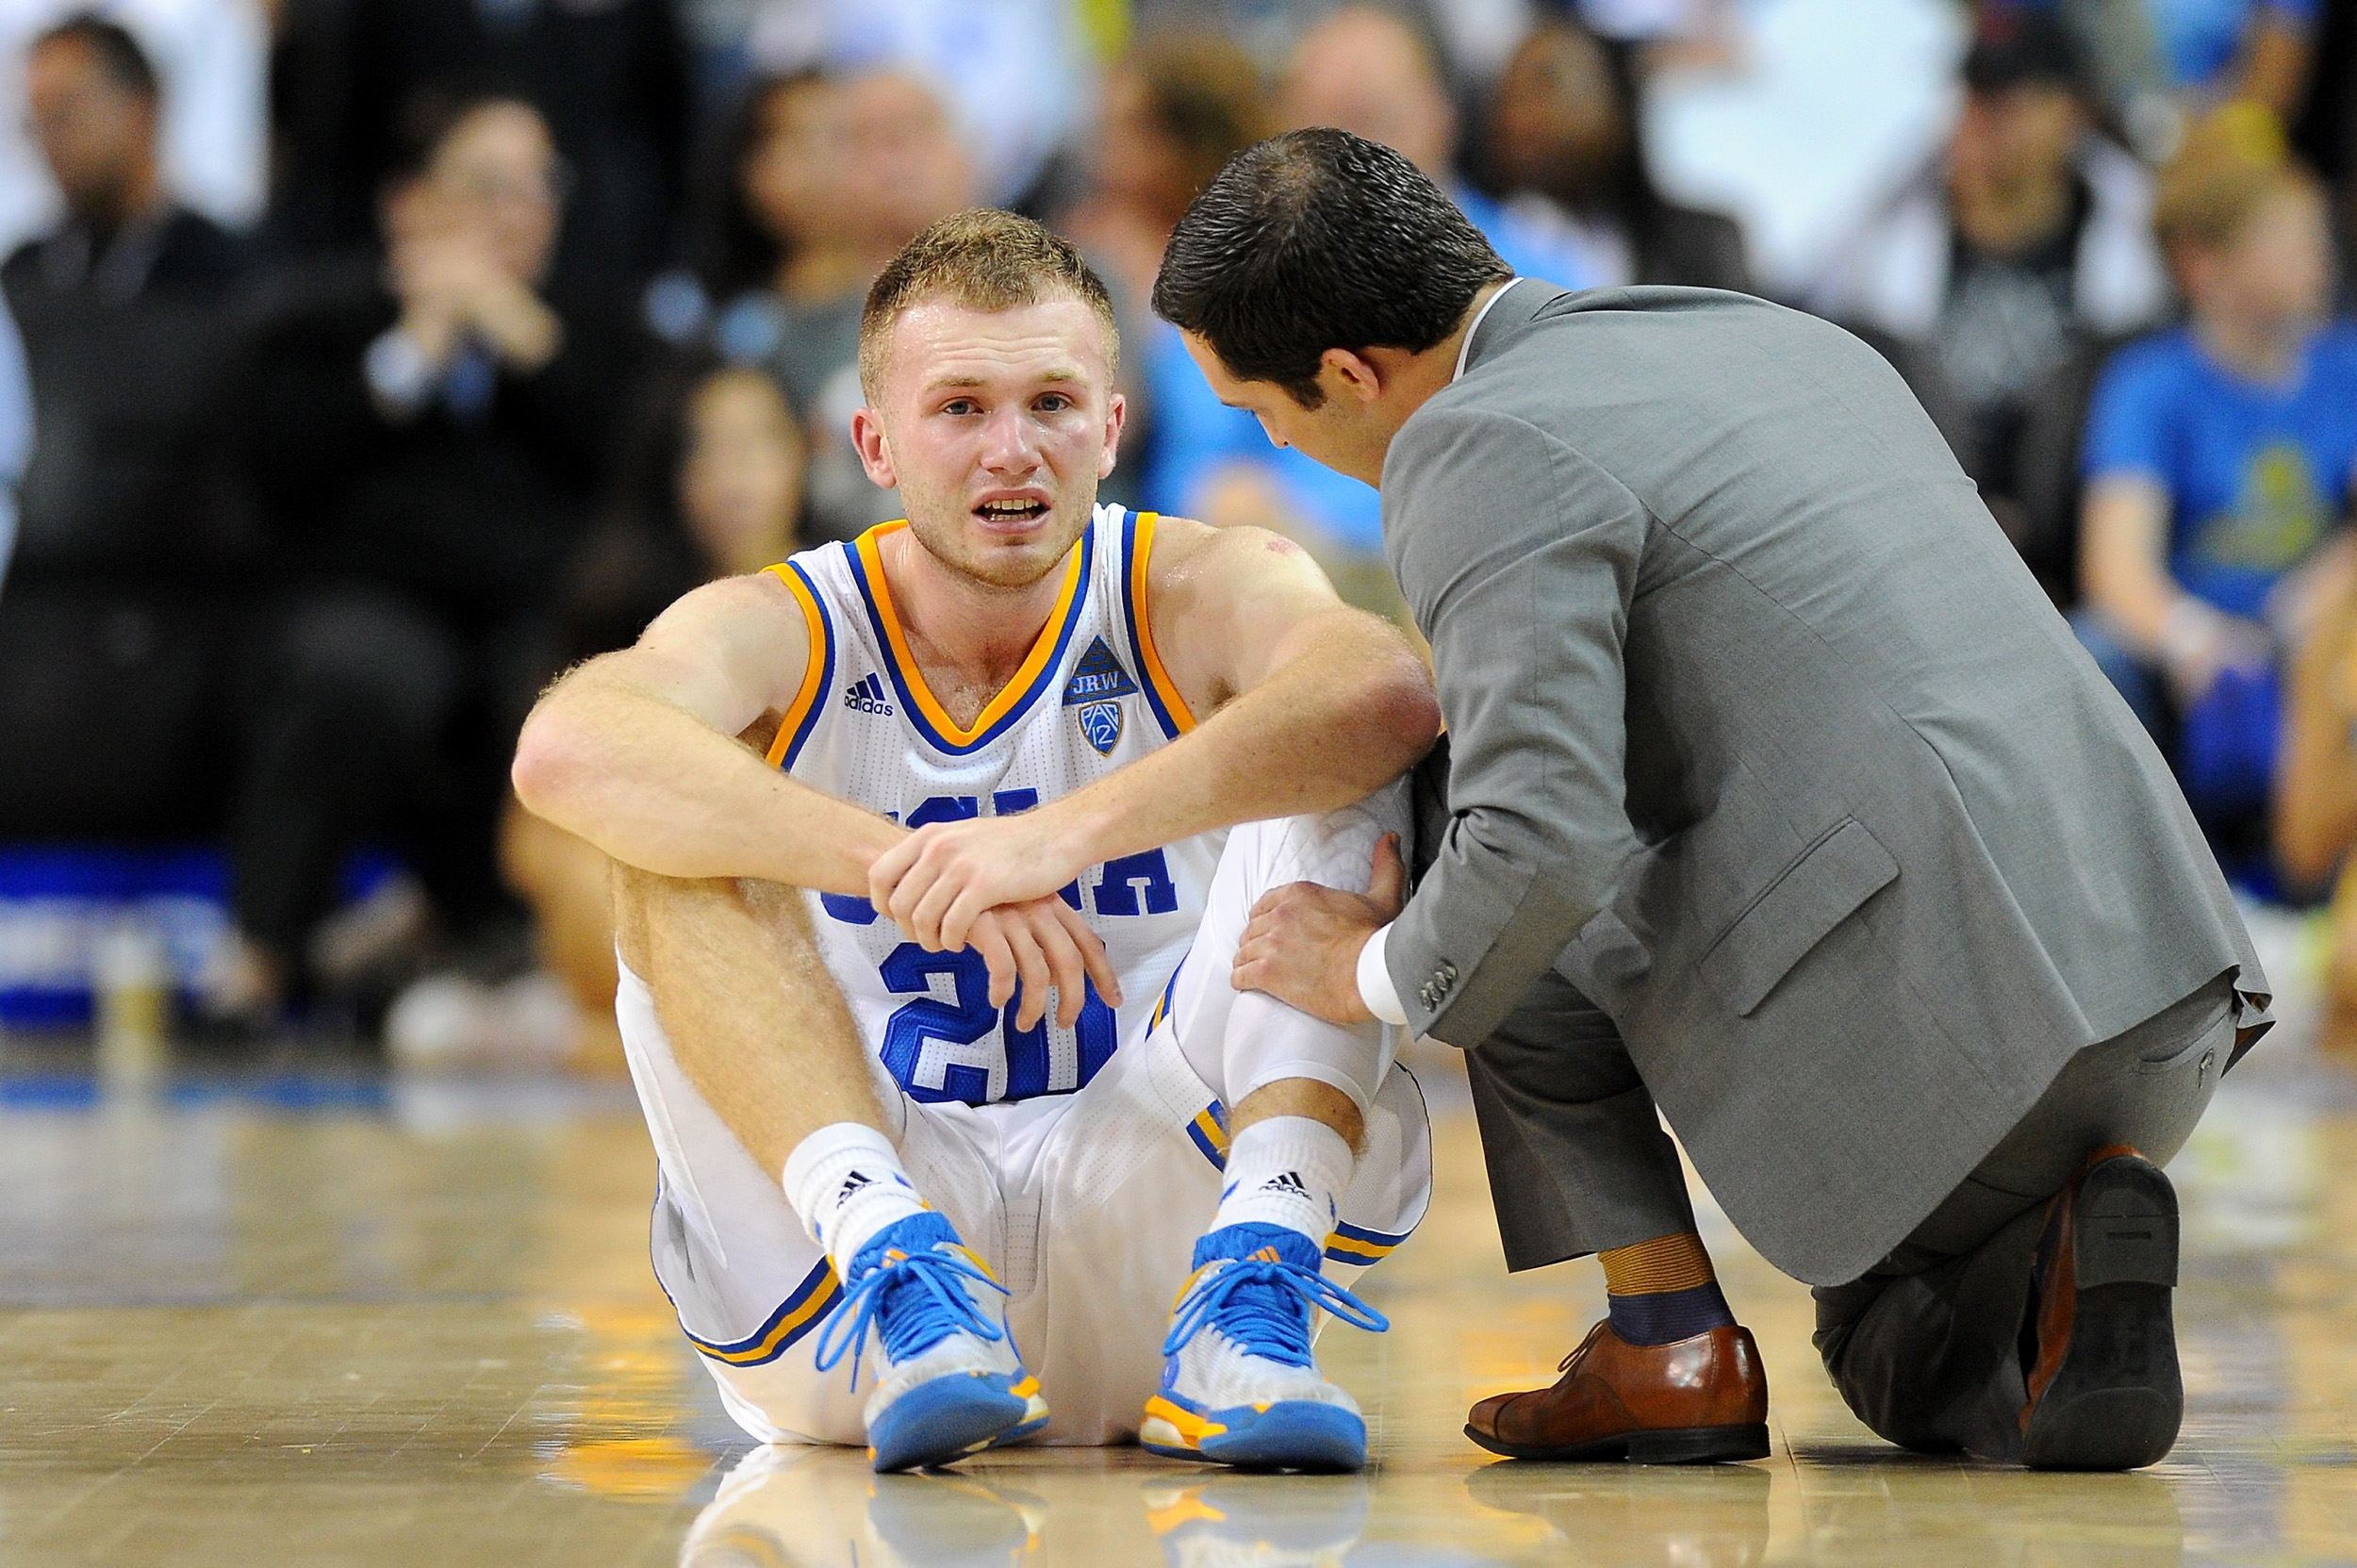 UCLA's Bryce Alford is looked at by a trainer after a collision during an NCAA college basketball game against Oregon State in Los Angeles, Saturday, March 5, 2016. Oregon State beat UCLA 86-82. (AP Photo/Michael Owen Baker)